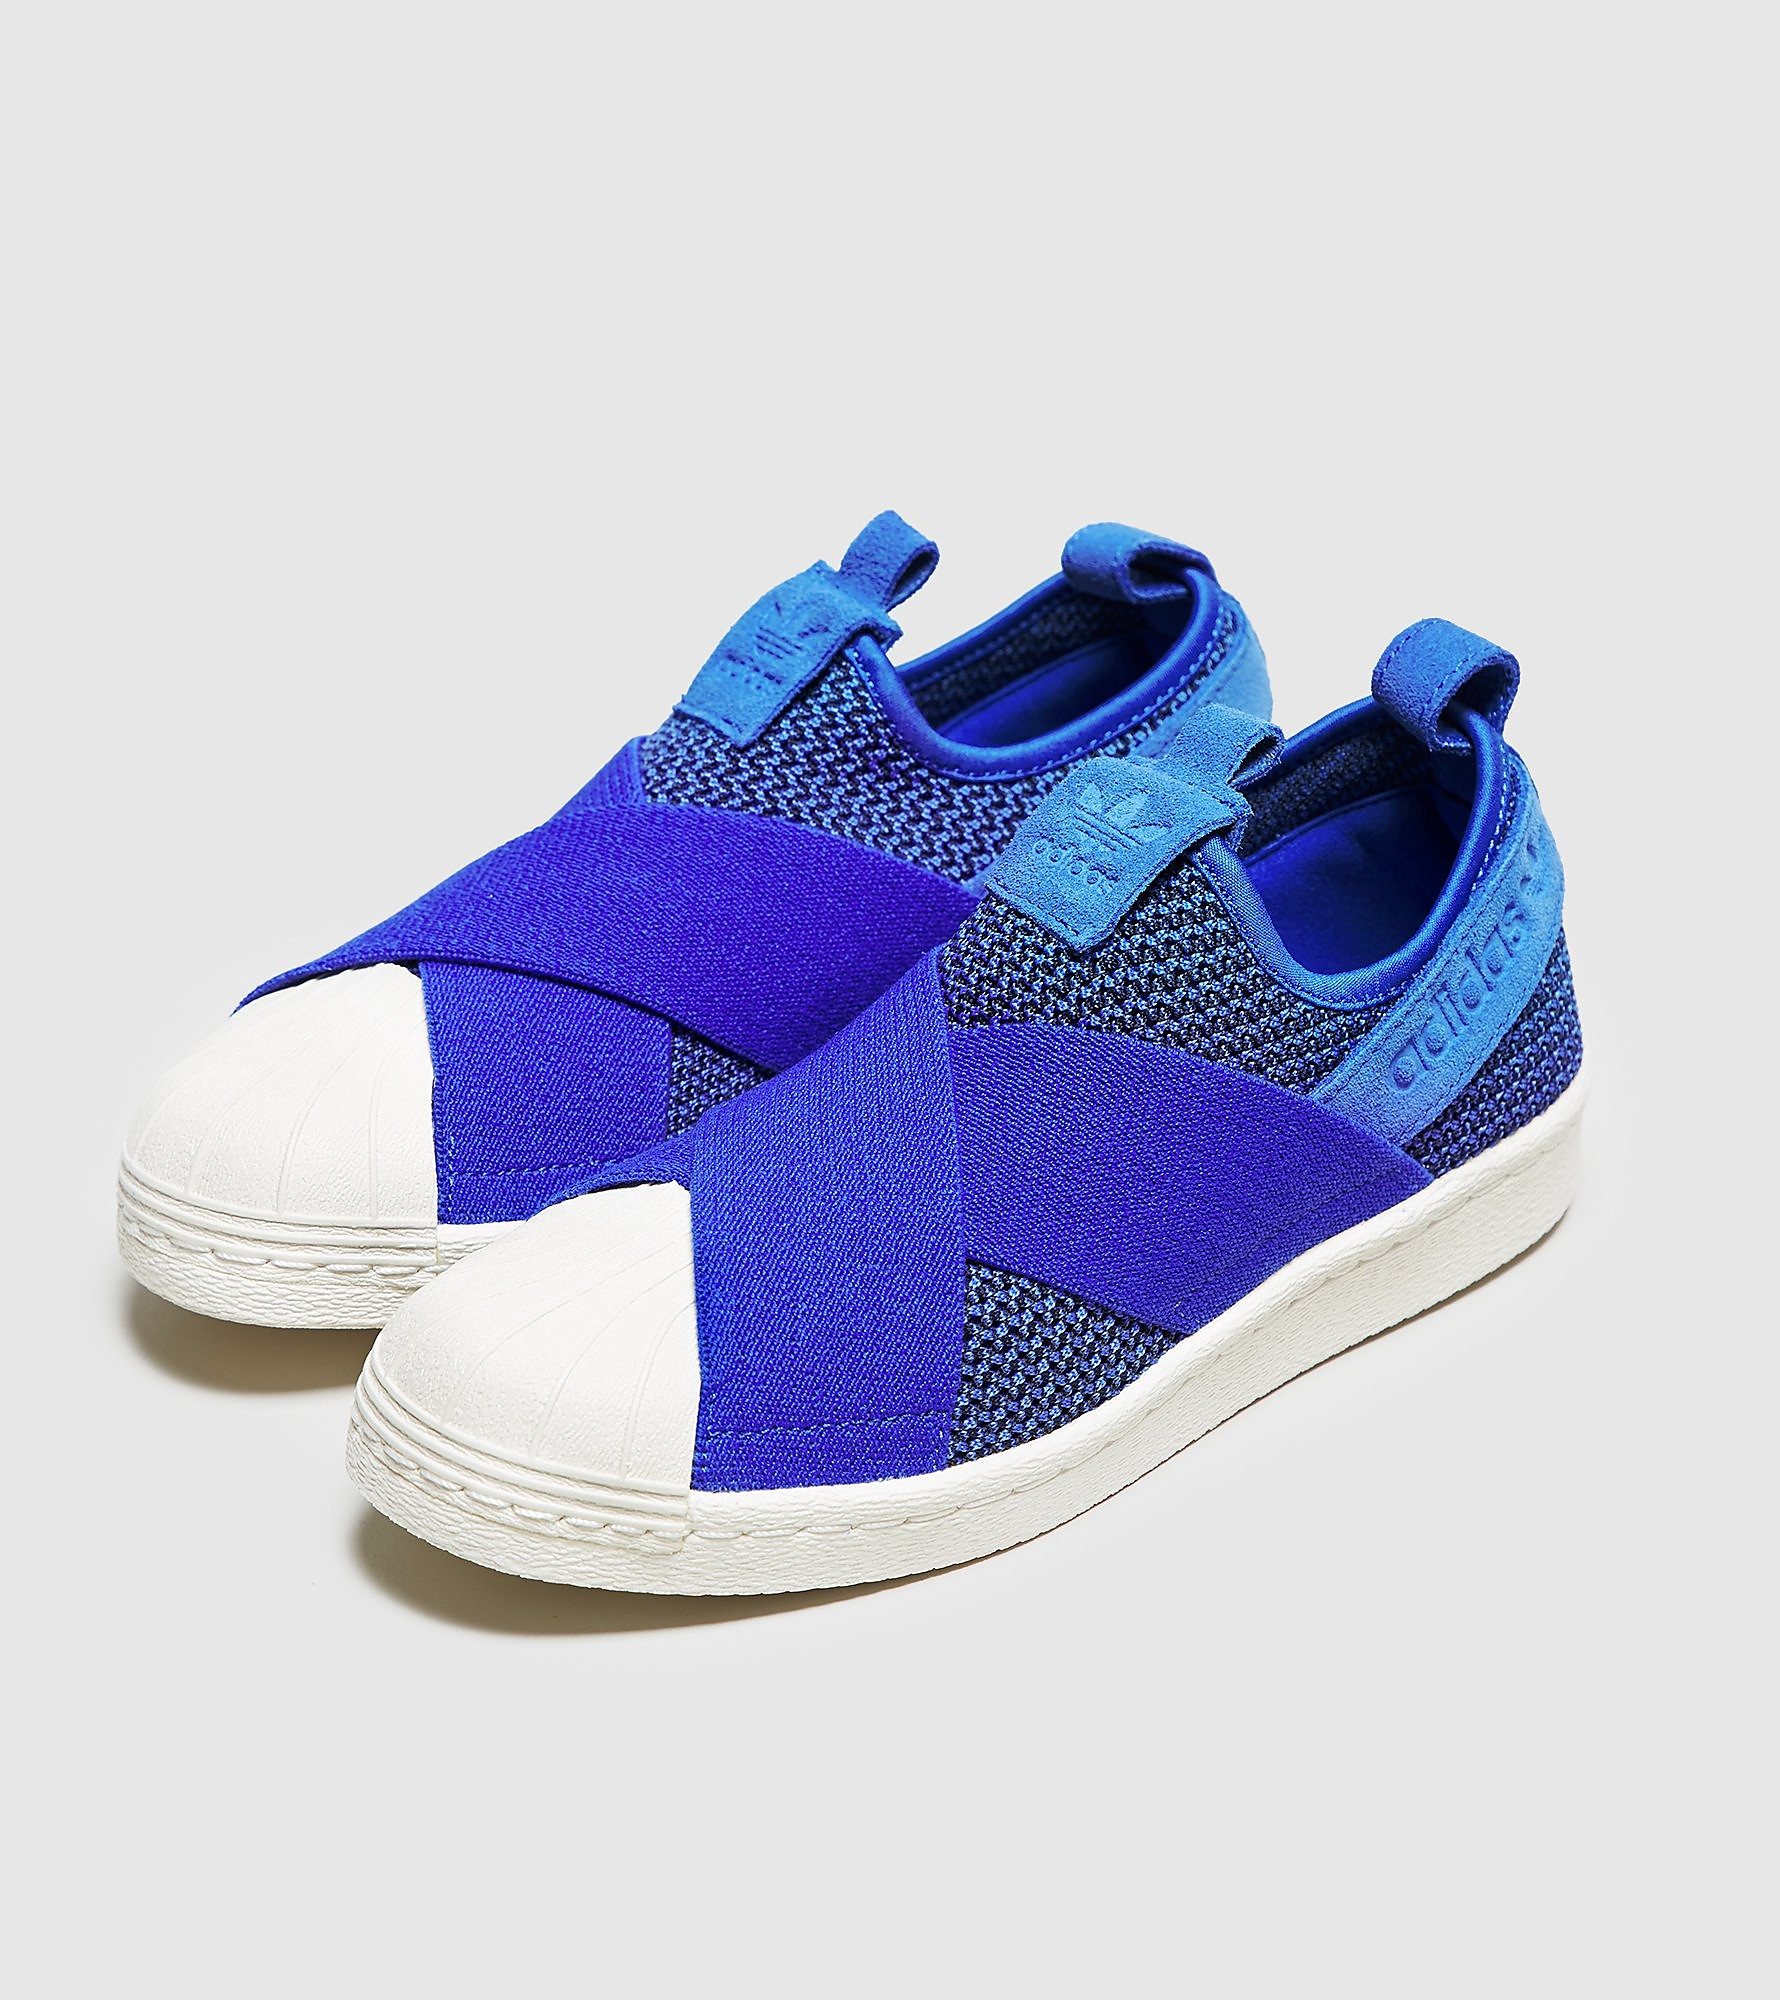 adidas Originals Superstar Slip On Women's